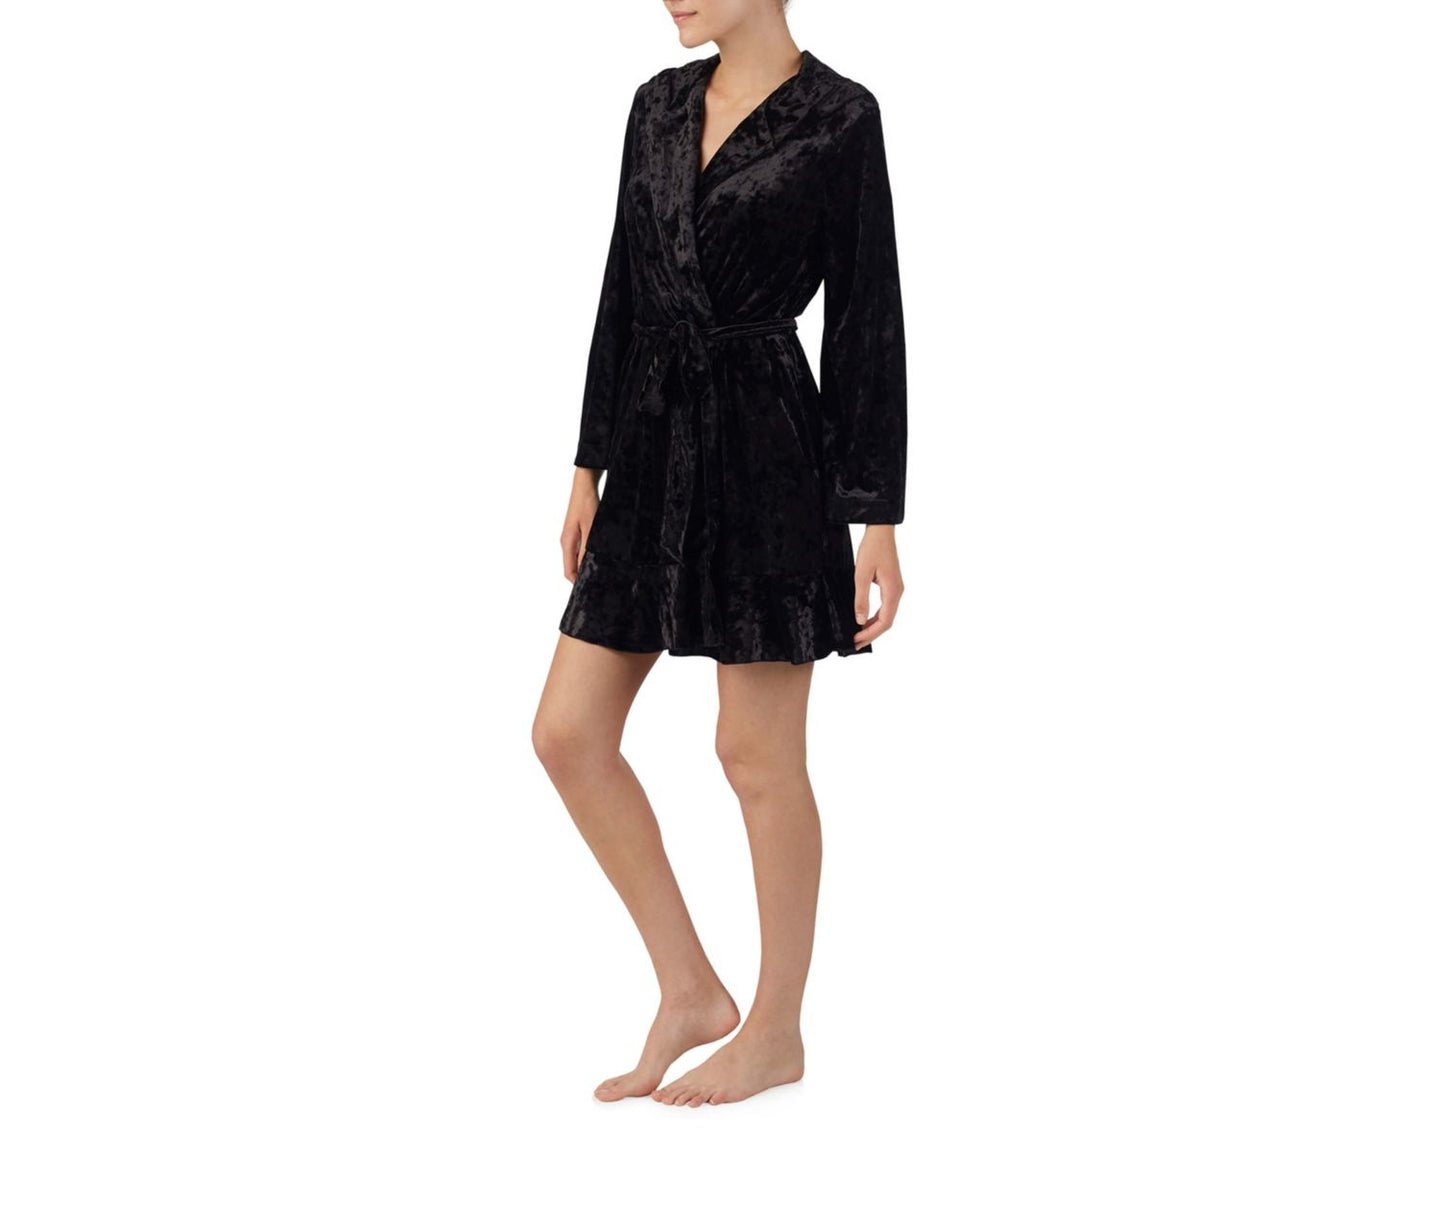 ROCK AND ROLL ROBE BLACK - APPAREL - Betsey Johnson